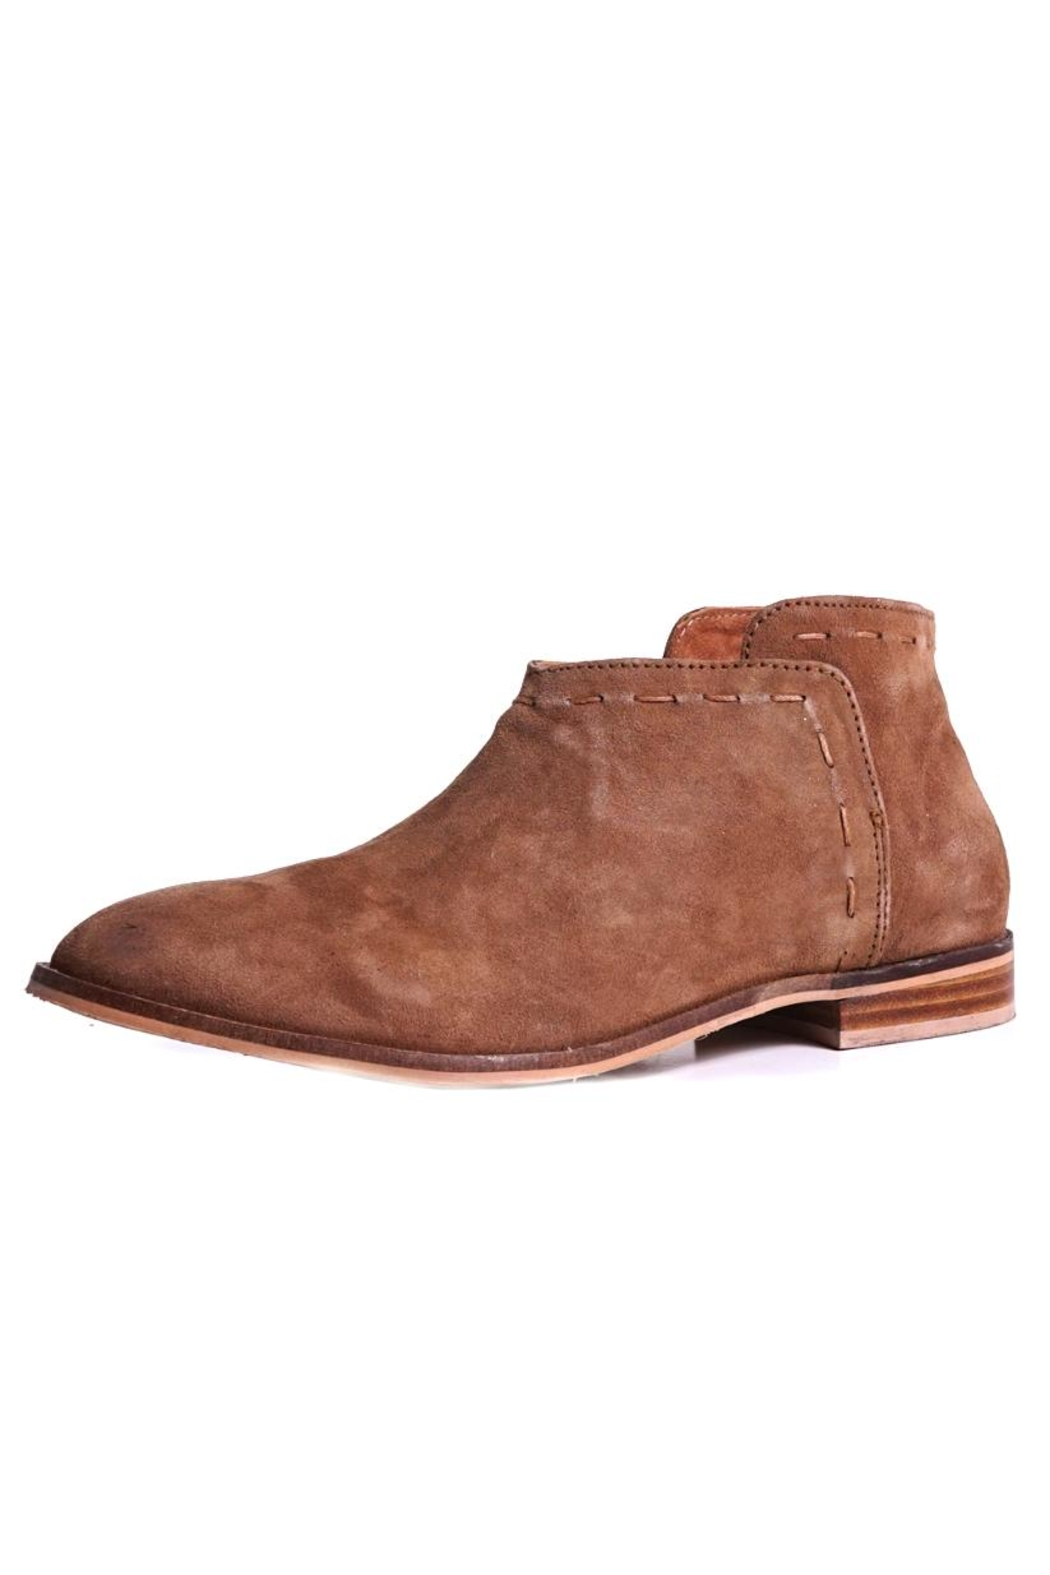 Rebels Suede Odell Bootie - Front Full Image